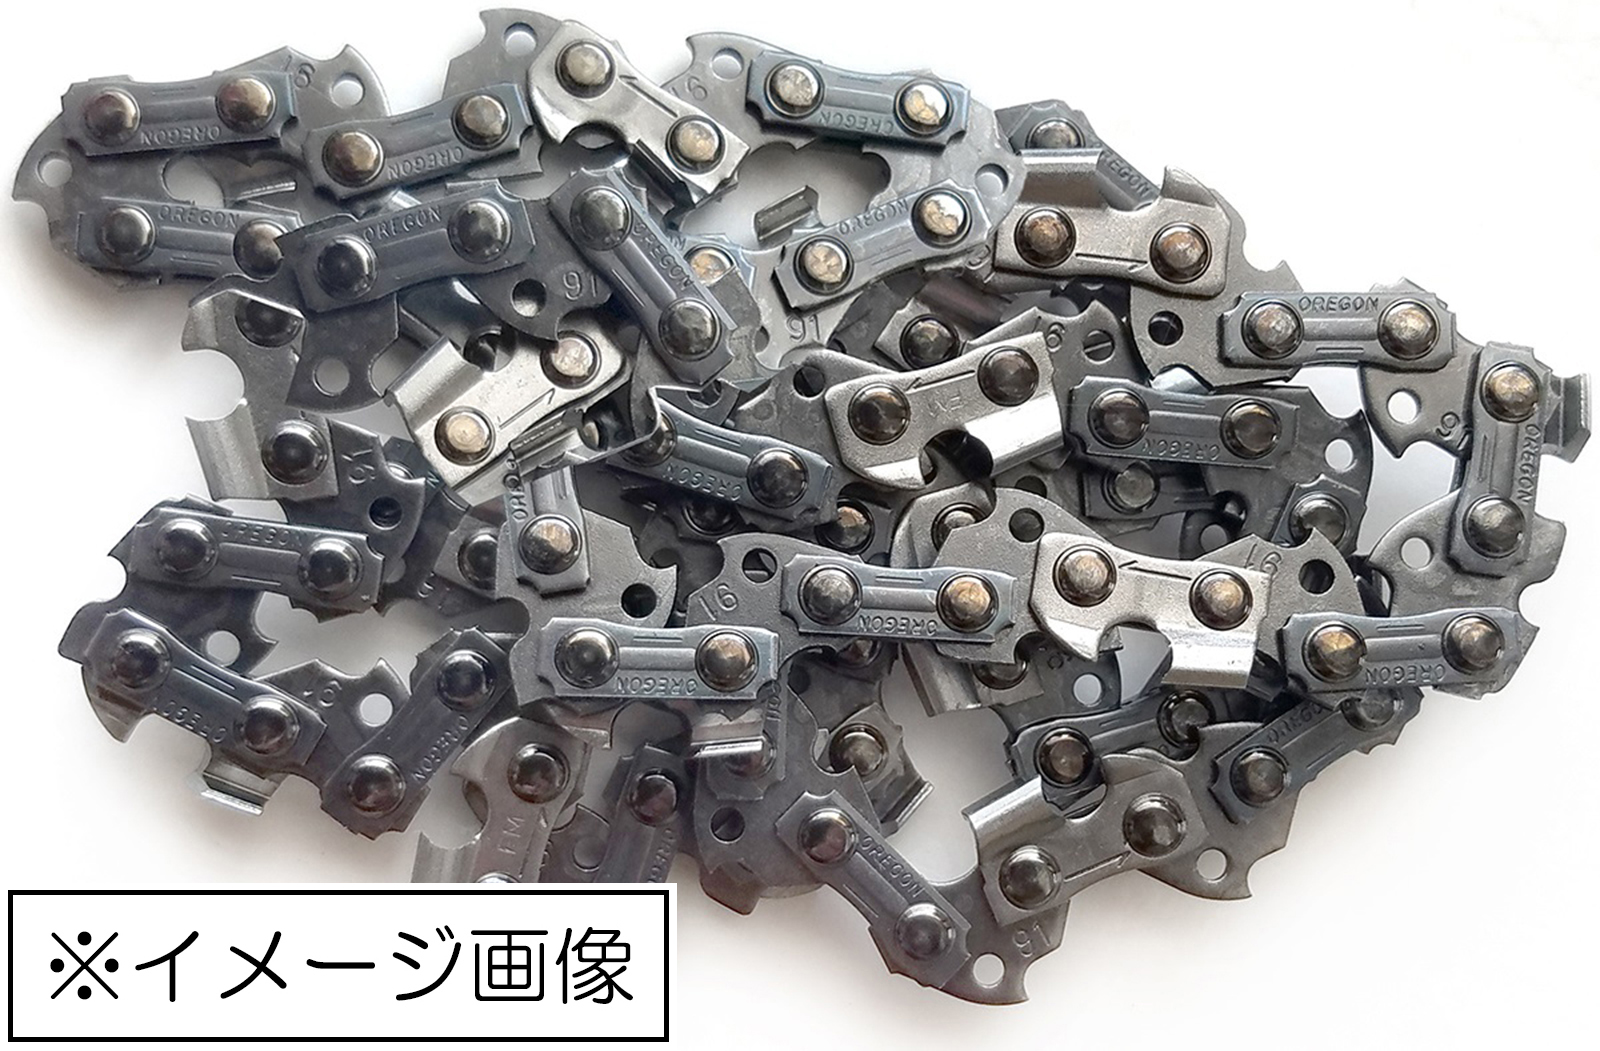 SALE セットアップ マキタ チェーン刃 竹用 25F-52E A-68884